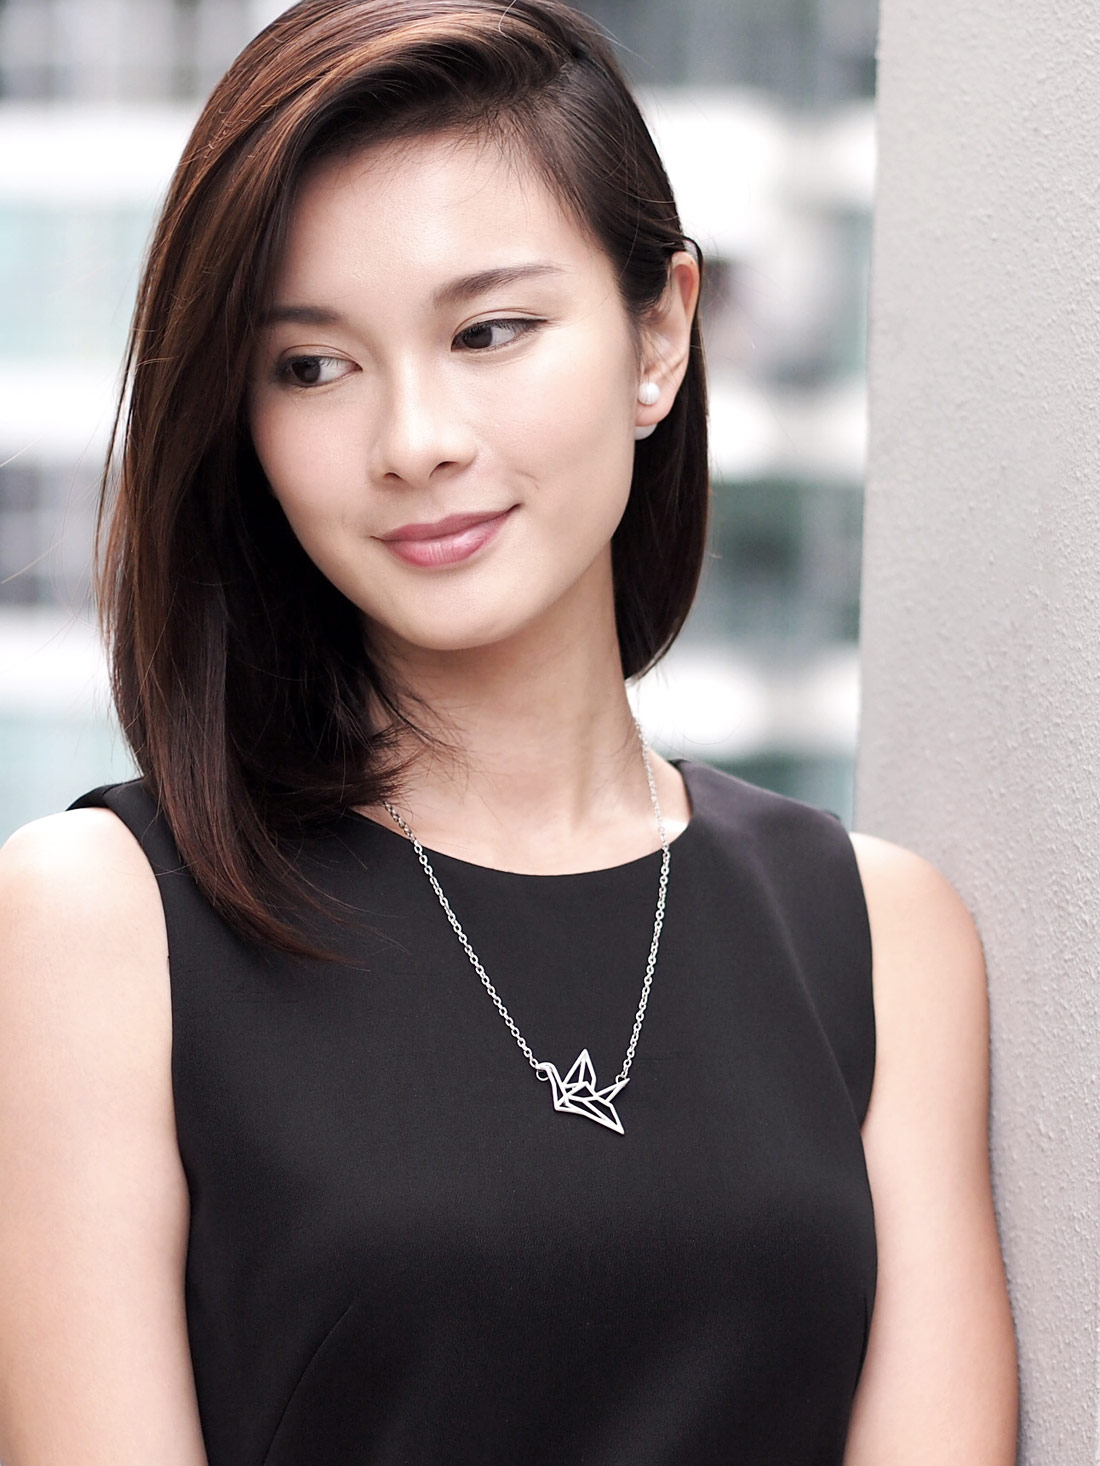 (Back in Stock) Origami Crane Necklace in Silver | Arva.co - photo#43